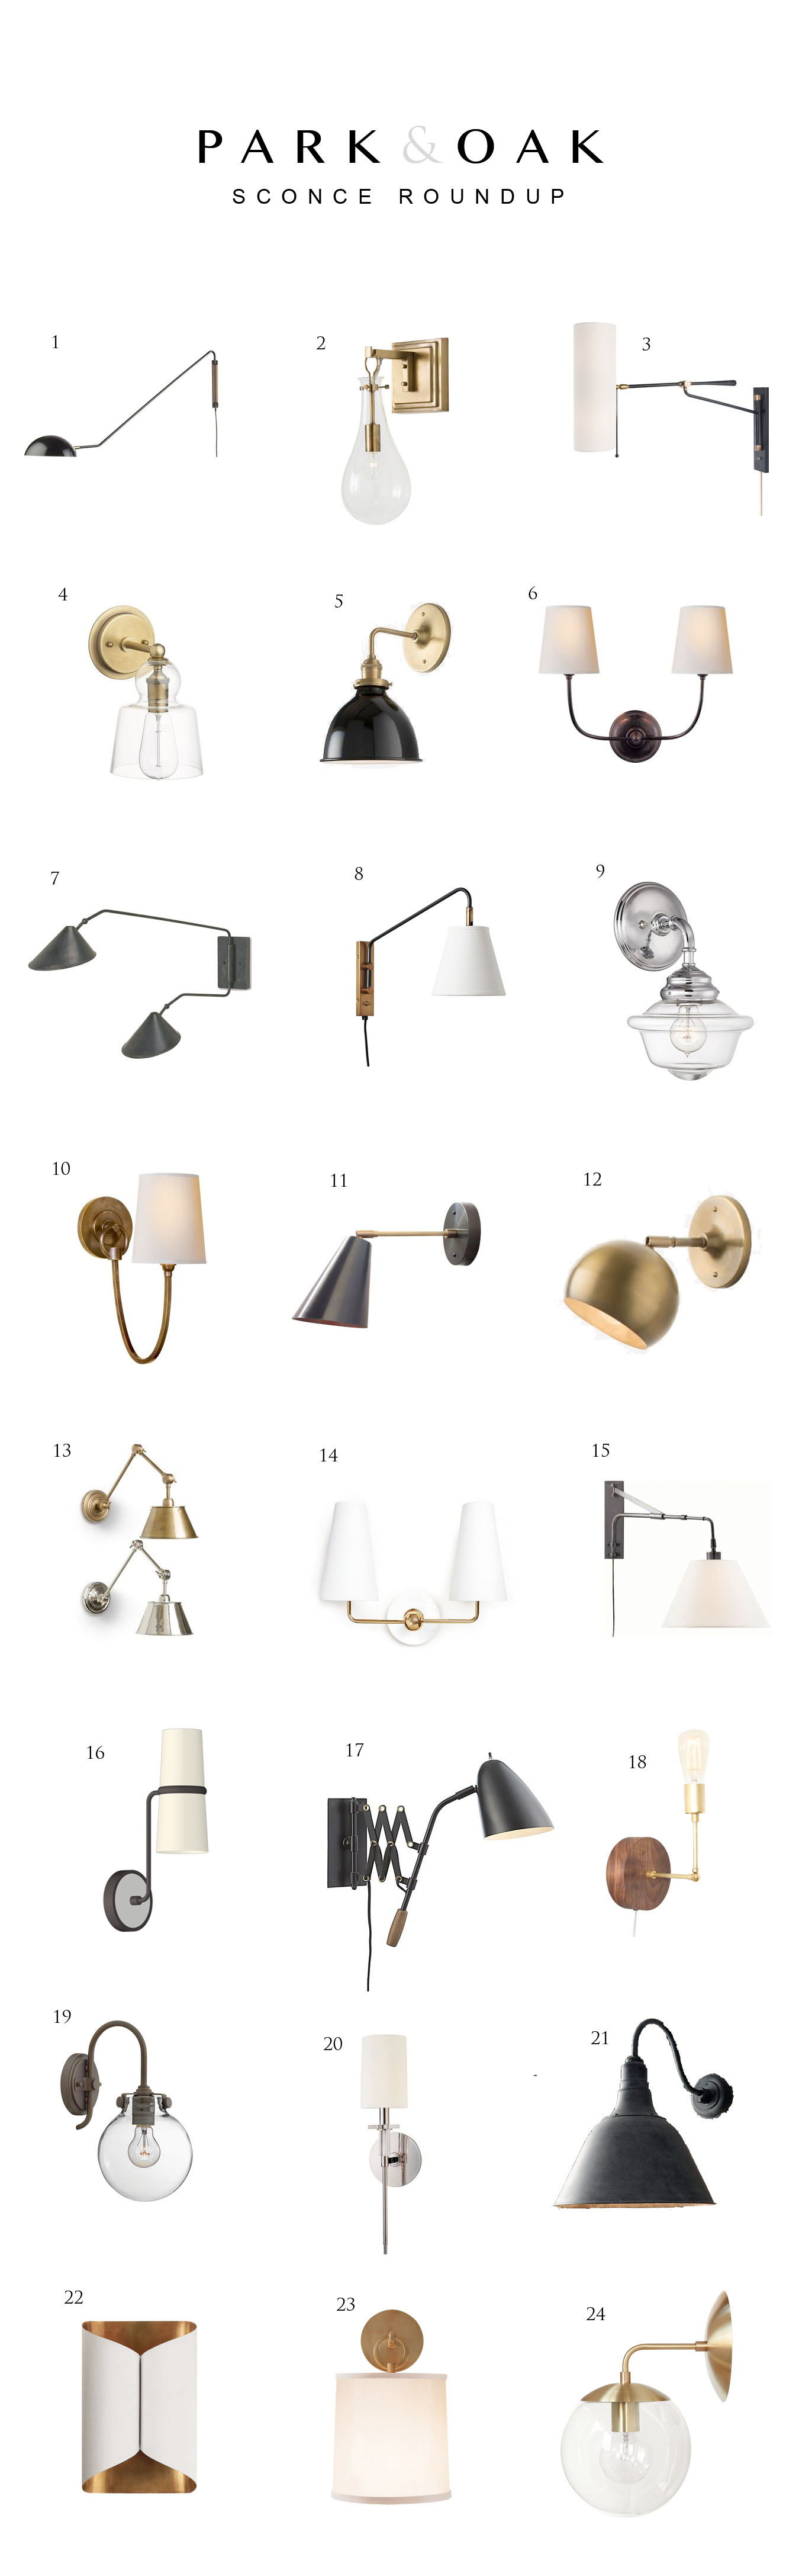 Wall Sconce Roundup Park And Oak Interior Design